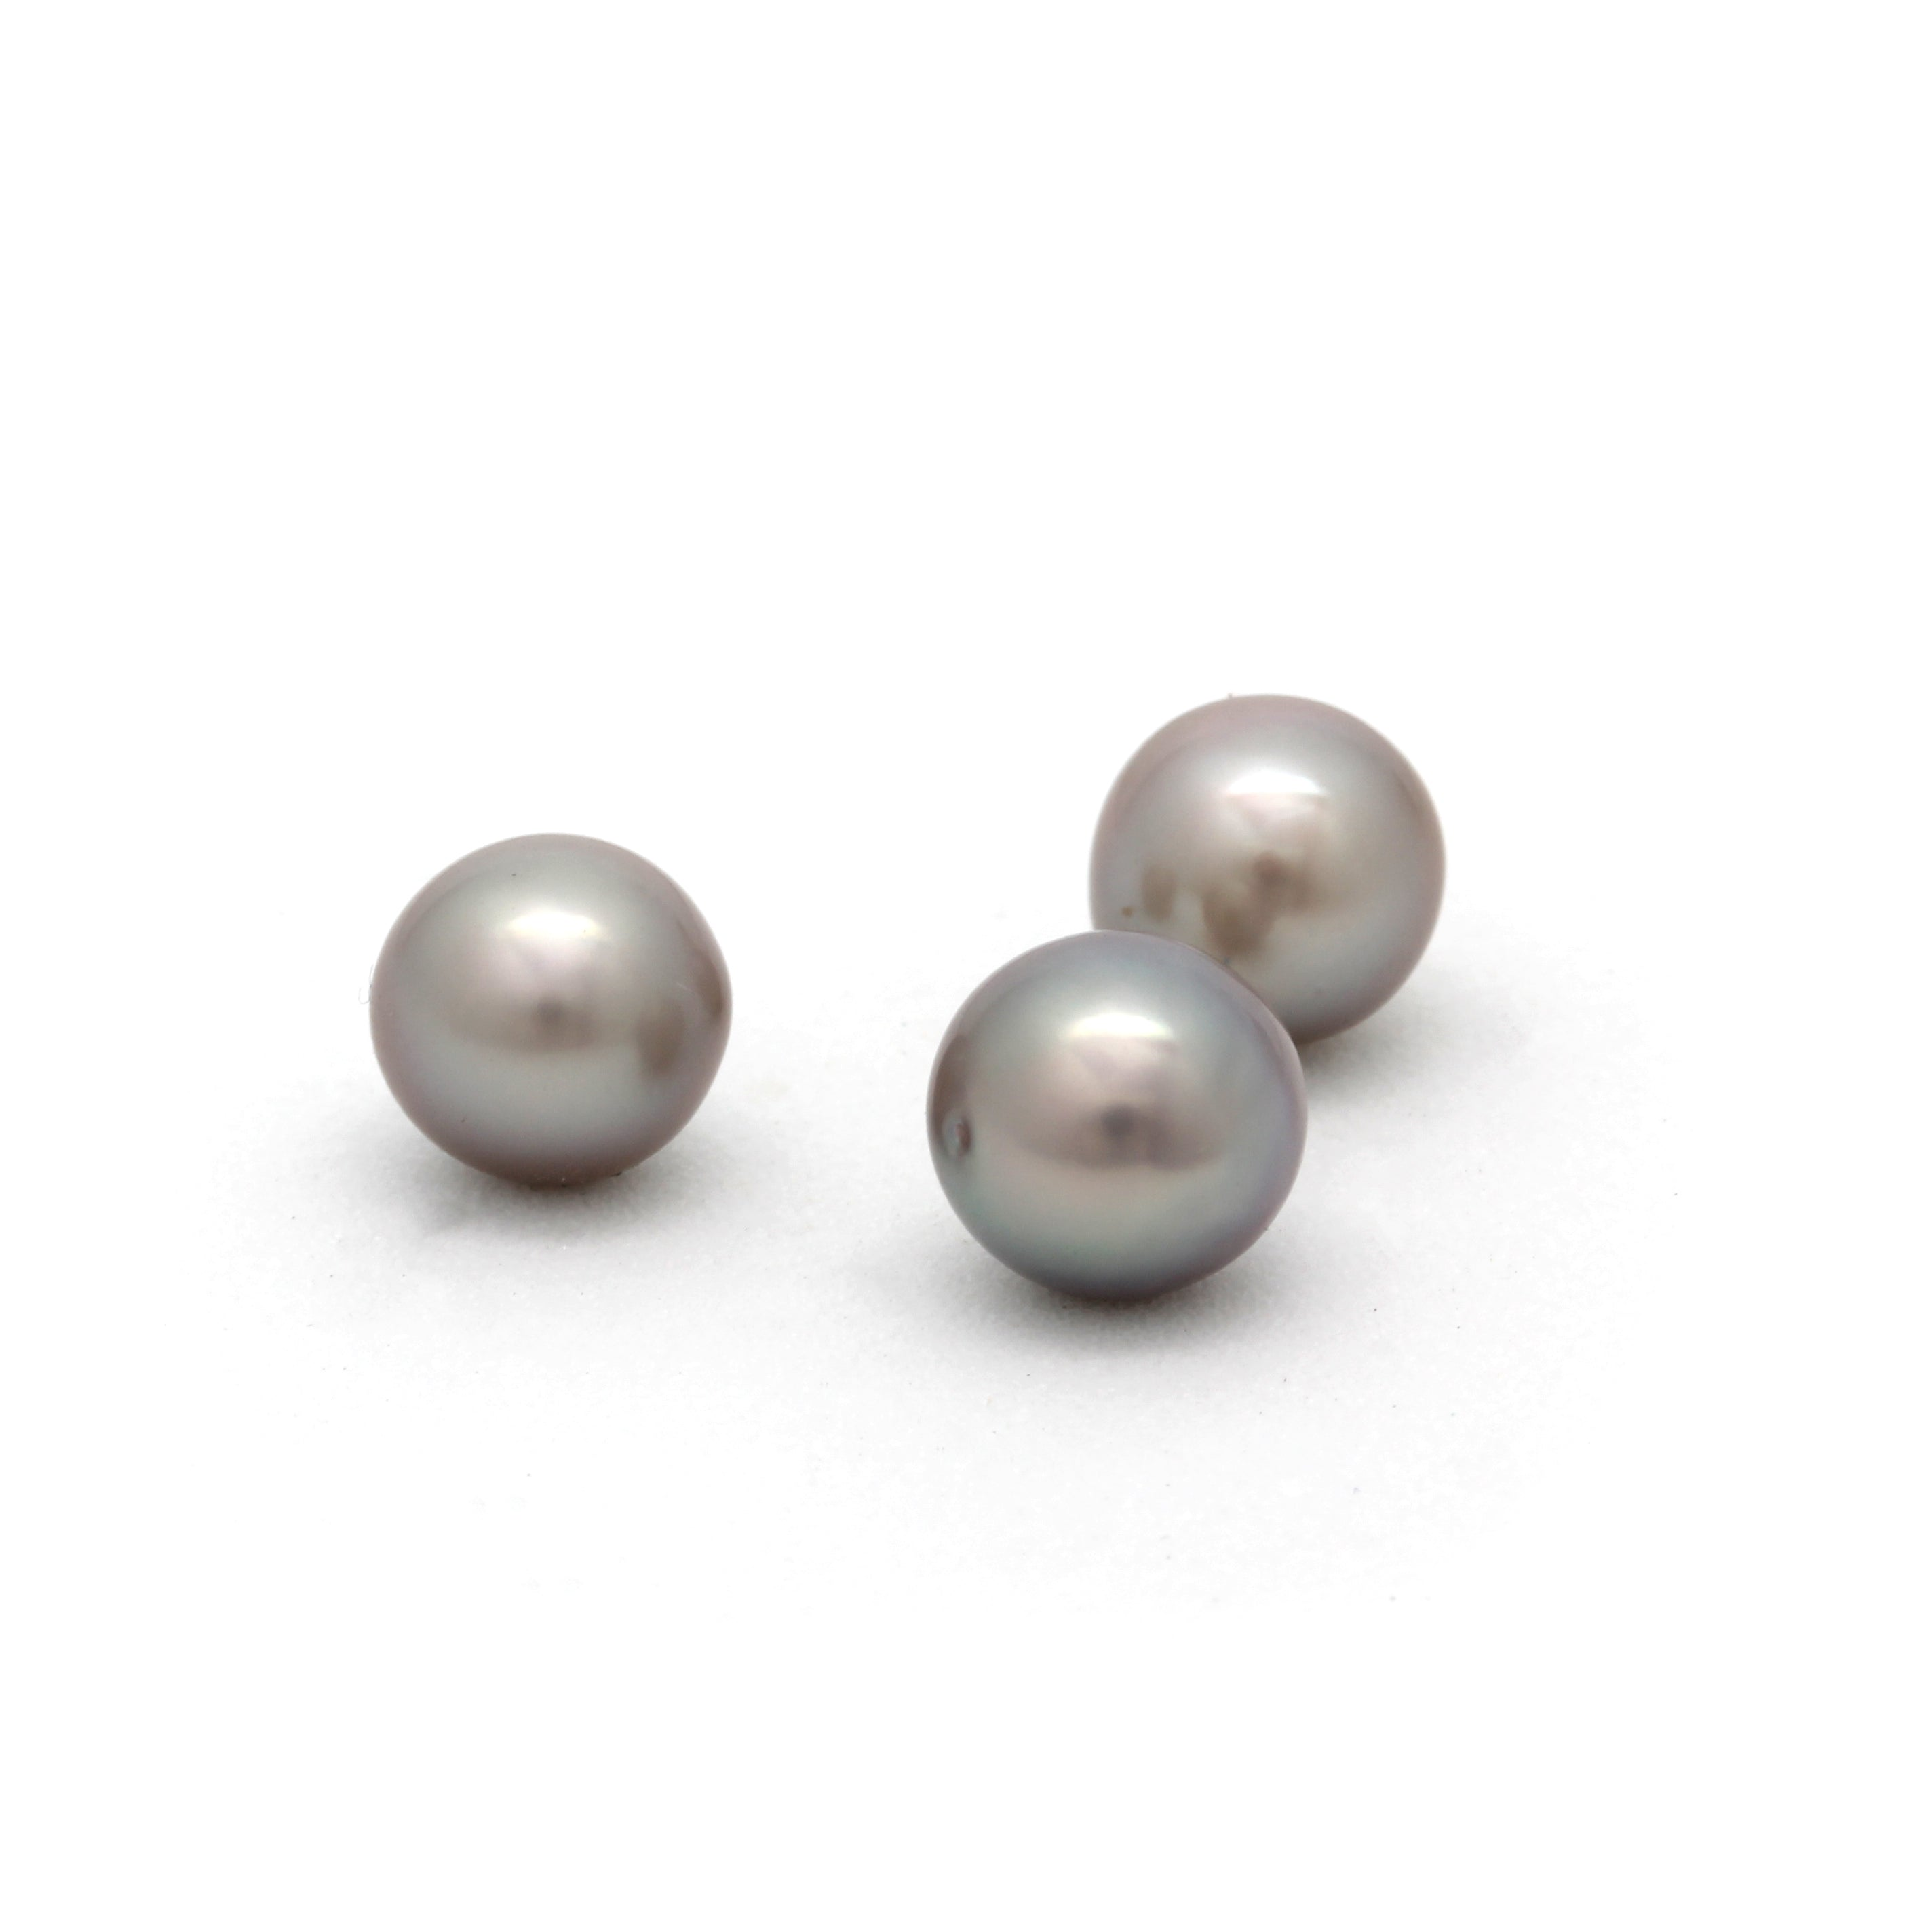 Lot of 3 Baroque Cortez Pearls from 2019 HARVEST